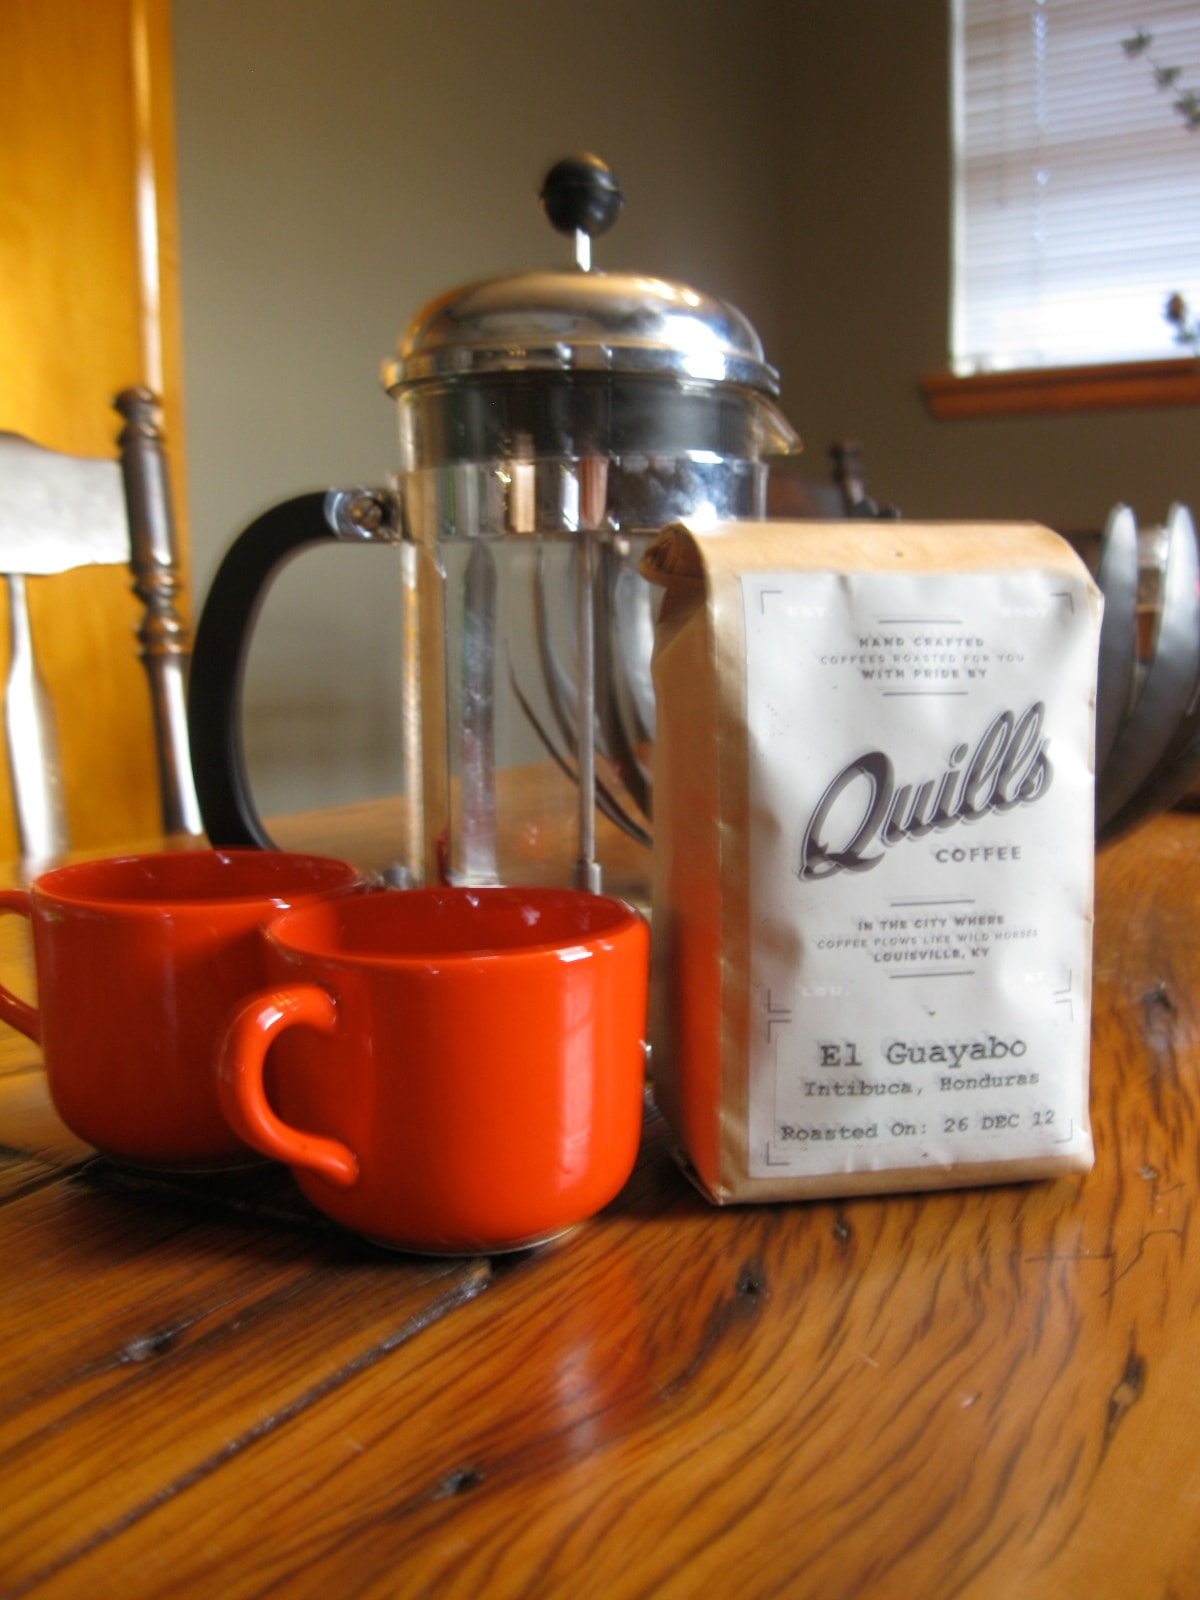 We'll leave you with the best coffee in town!